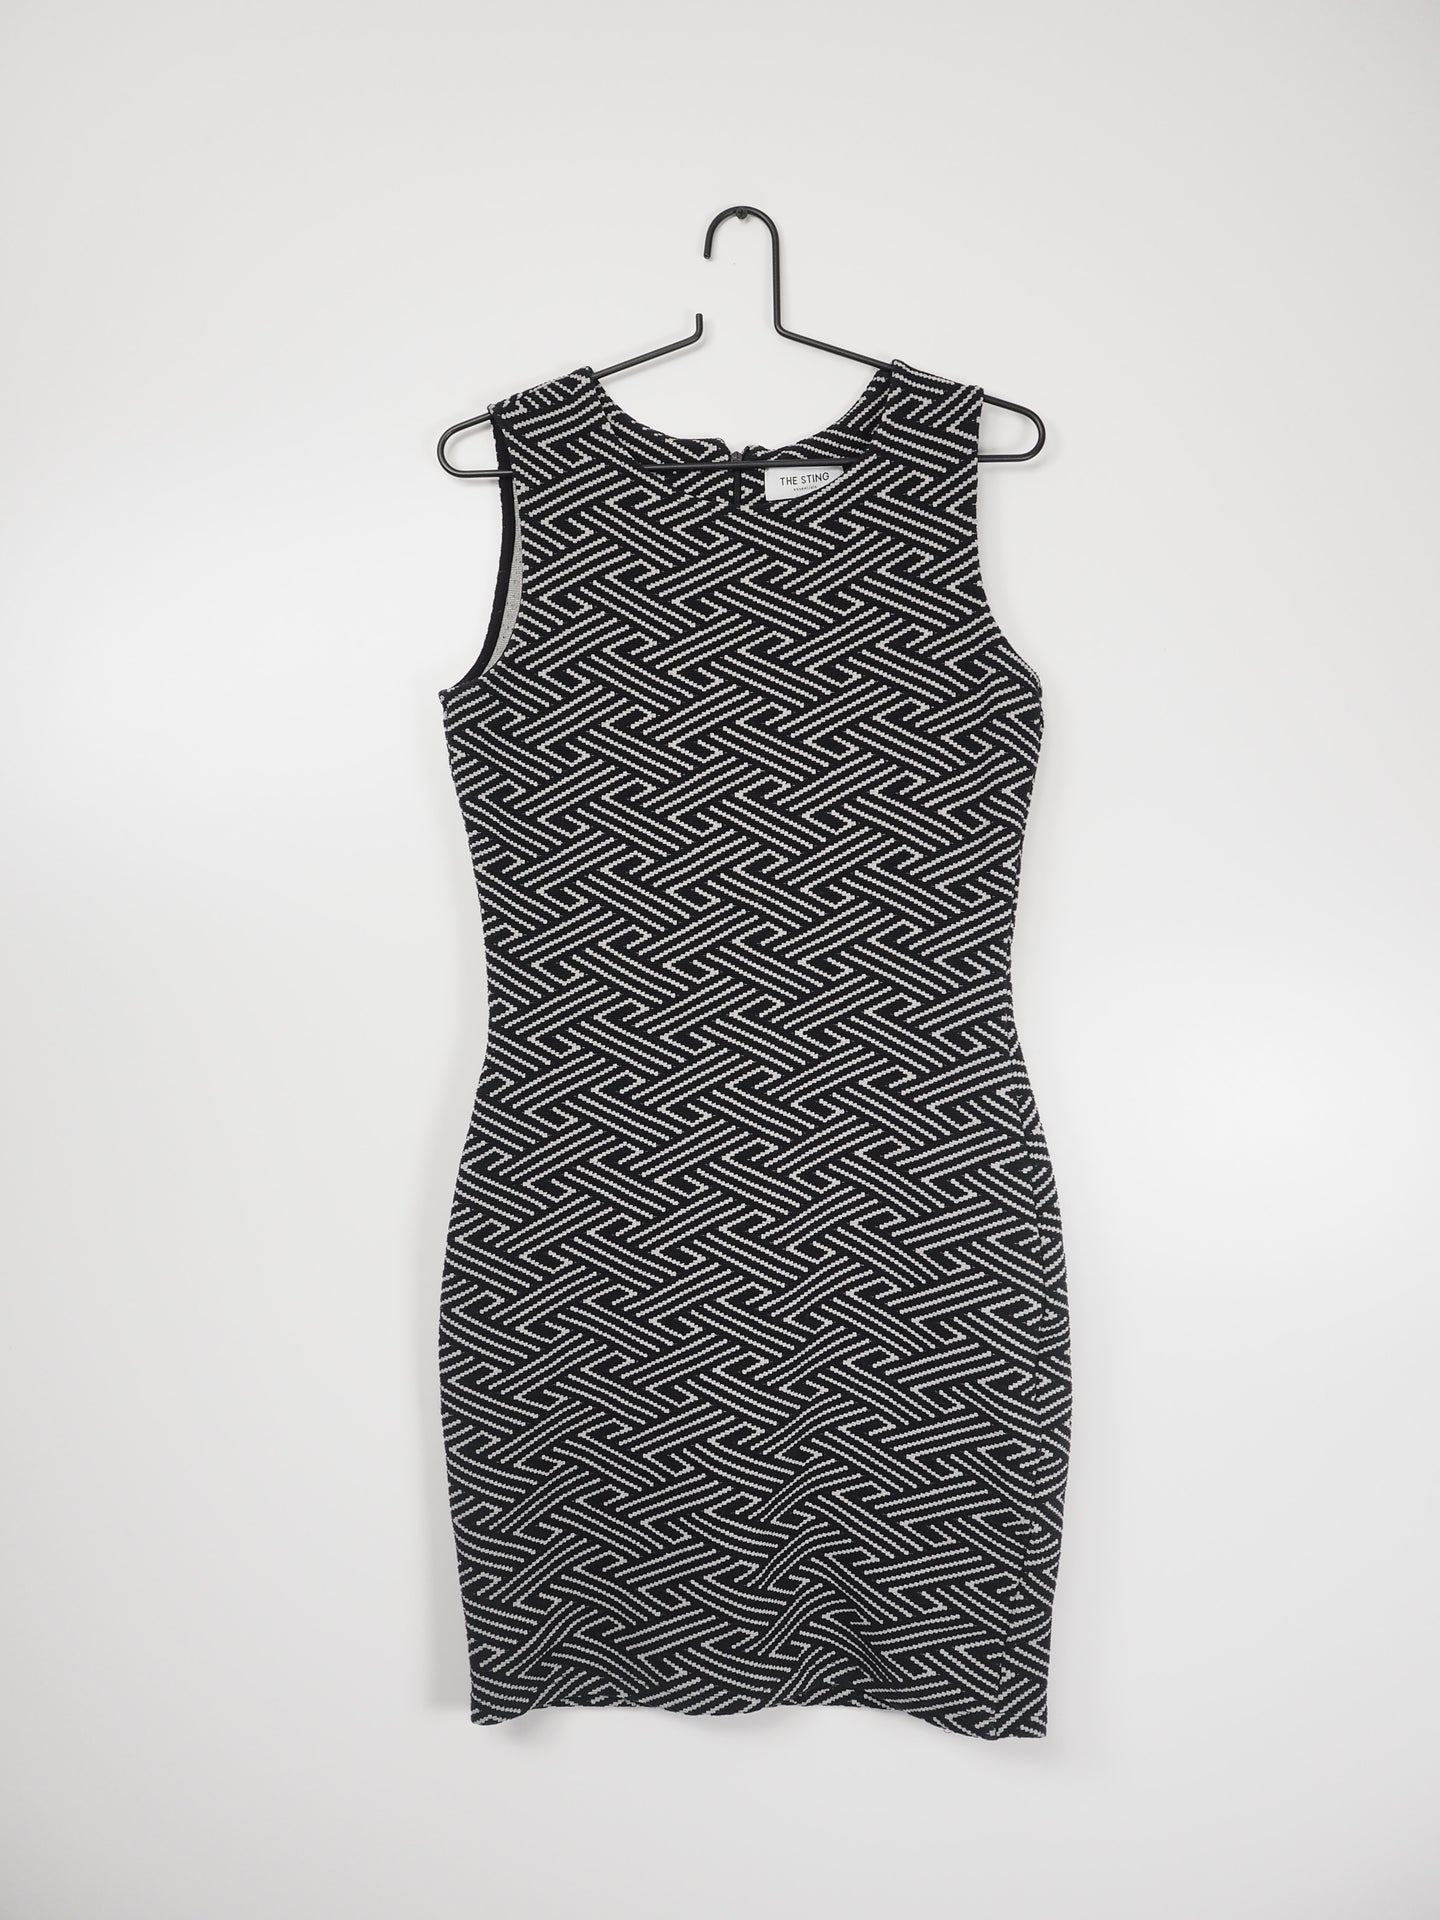 Bodycon dress (The Sting)